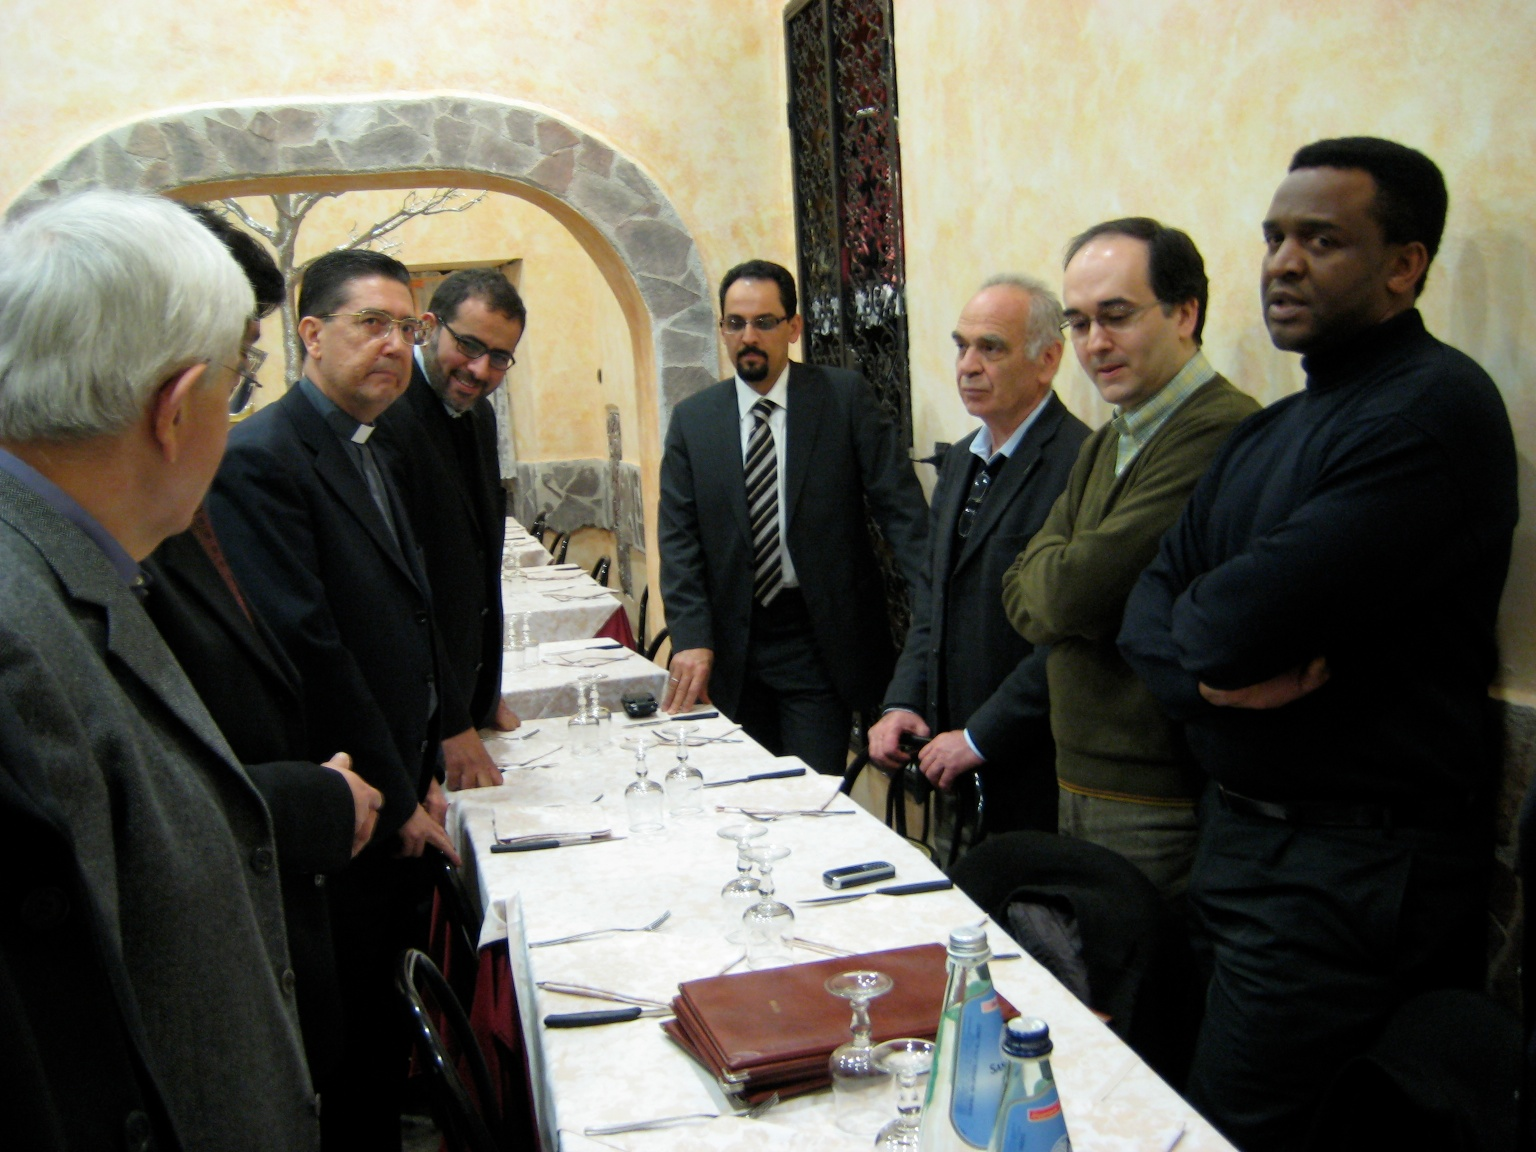 Muslims and The Vatican | 5